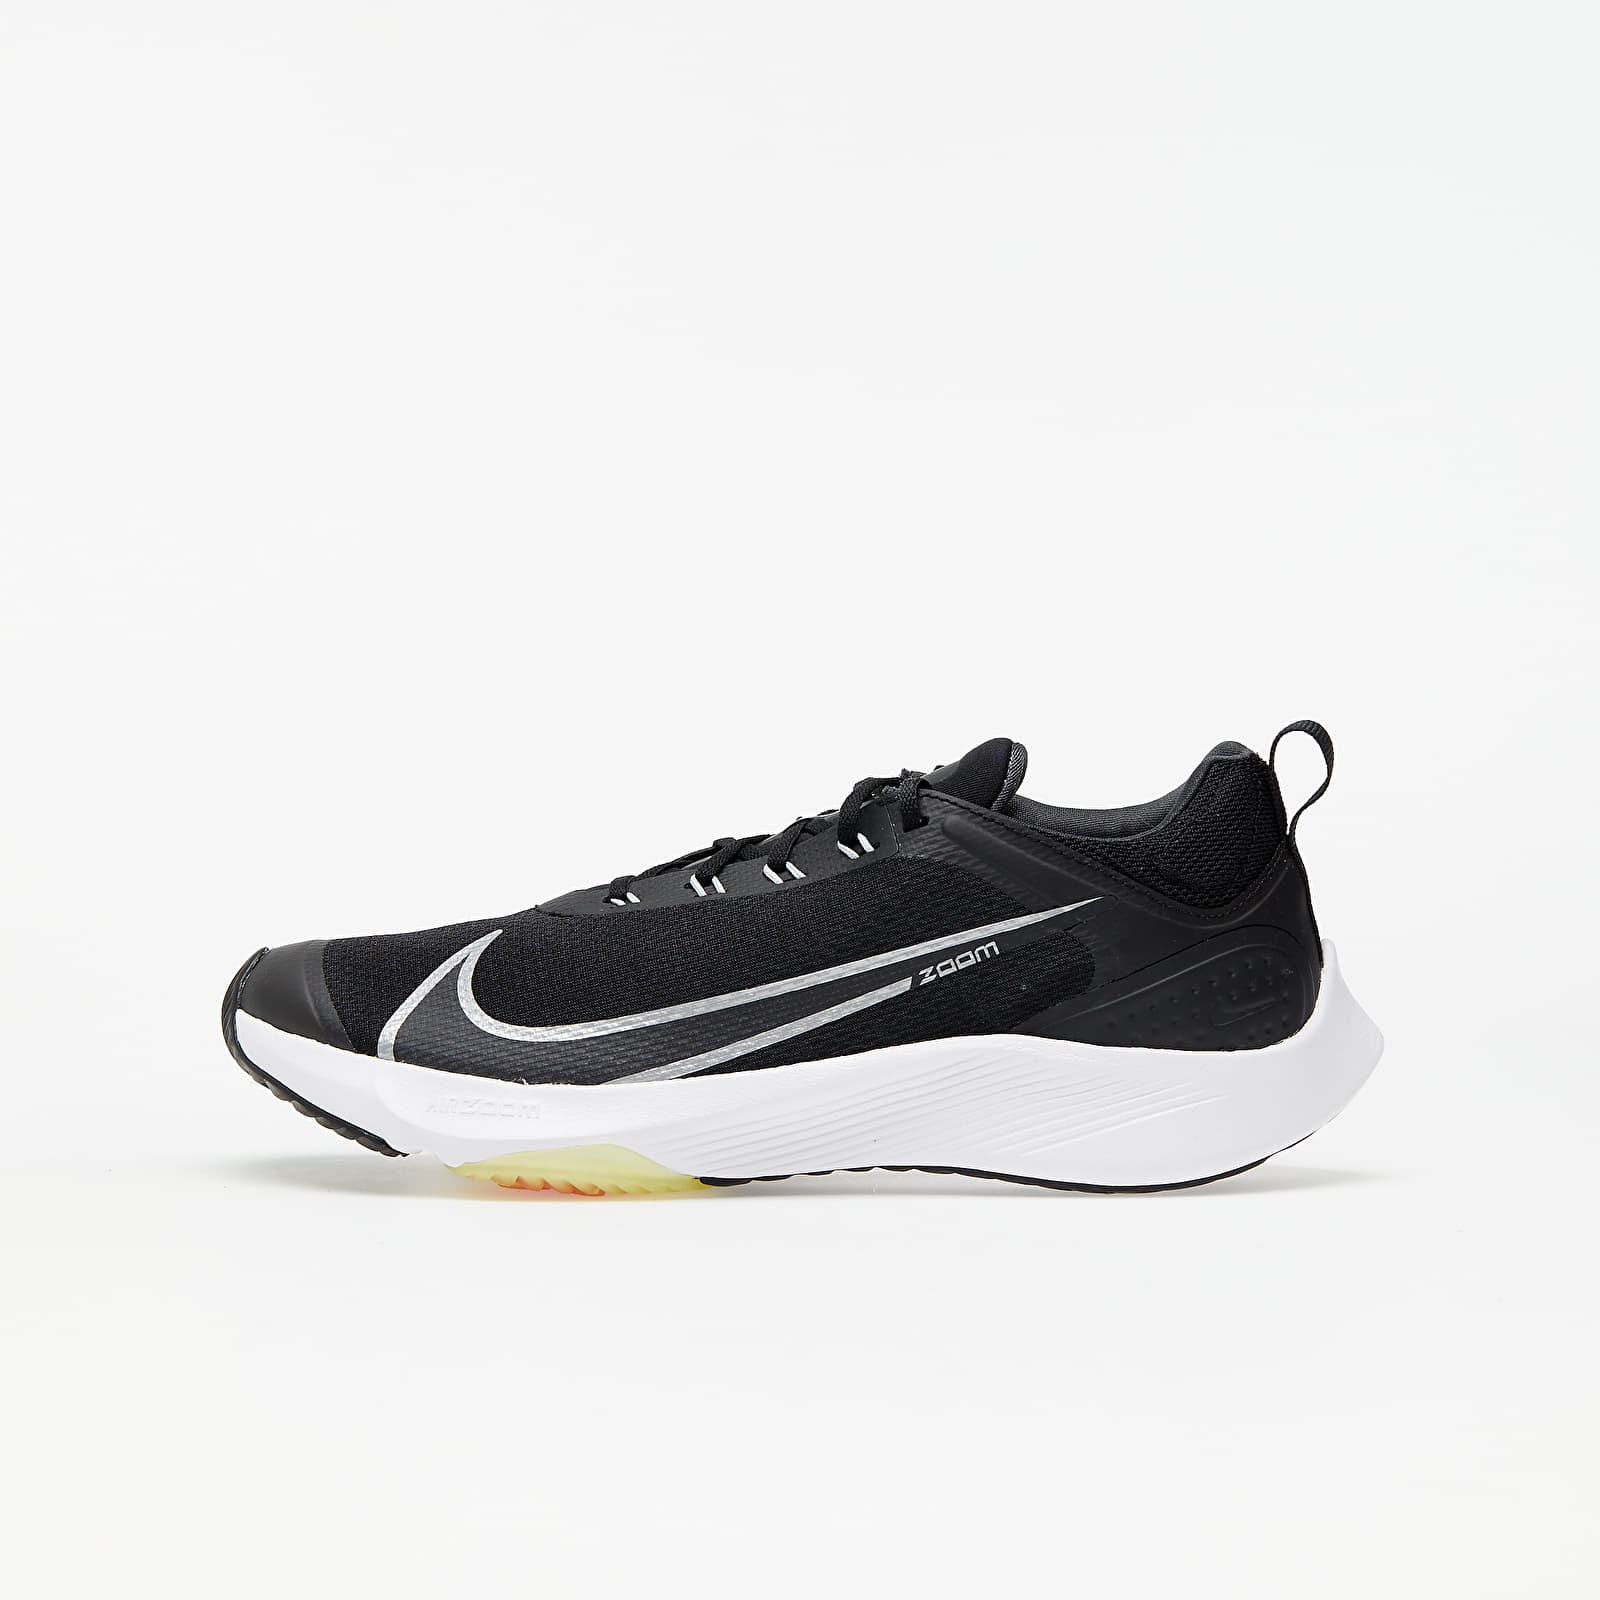 Nike Air Zoom Speed GS Black/ Metallic Silver-White-Volt EUR 37.5